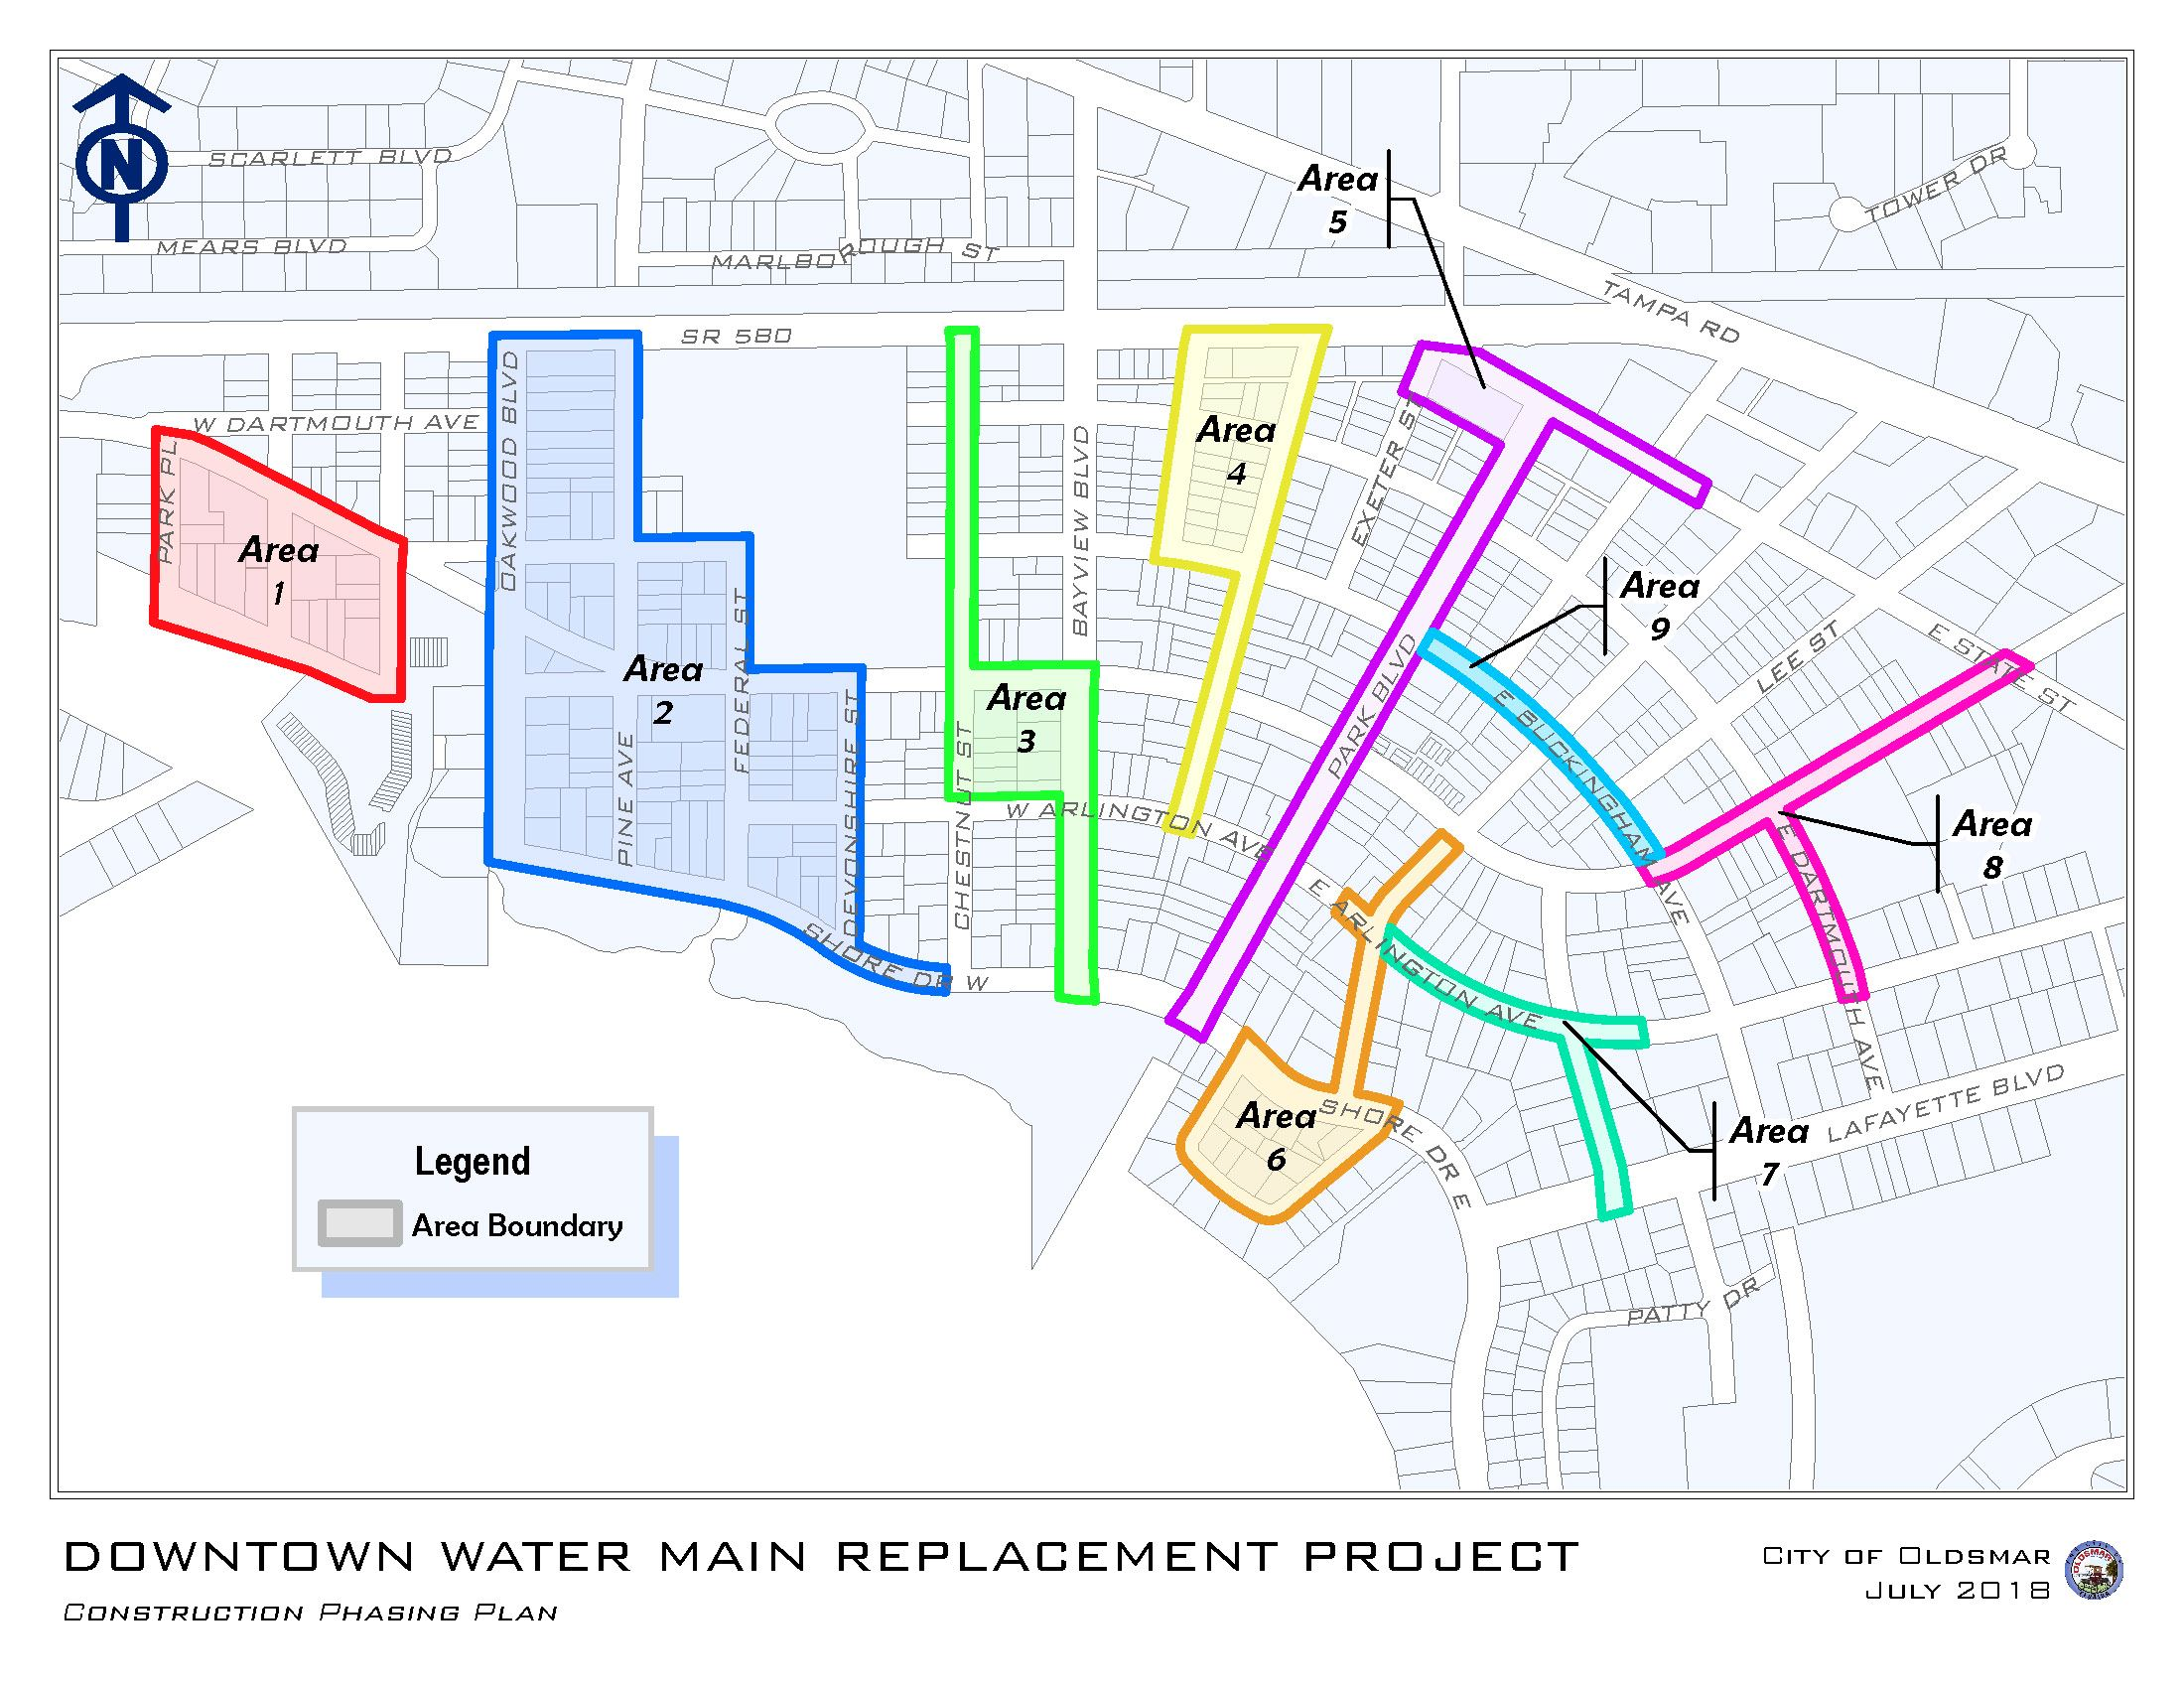 Map of Construction Phases for Downtown Water Main Replacement Project.